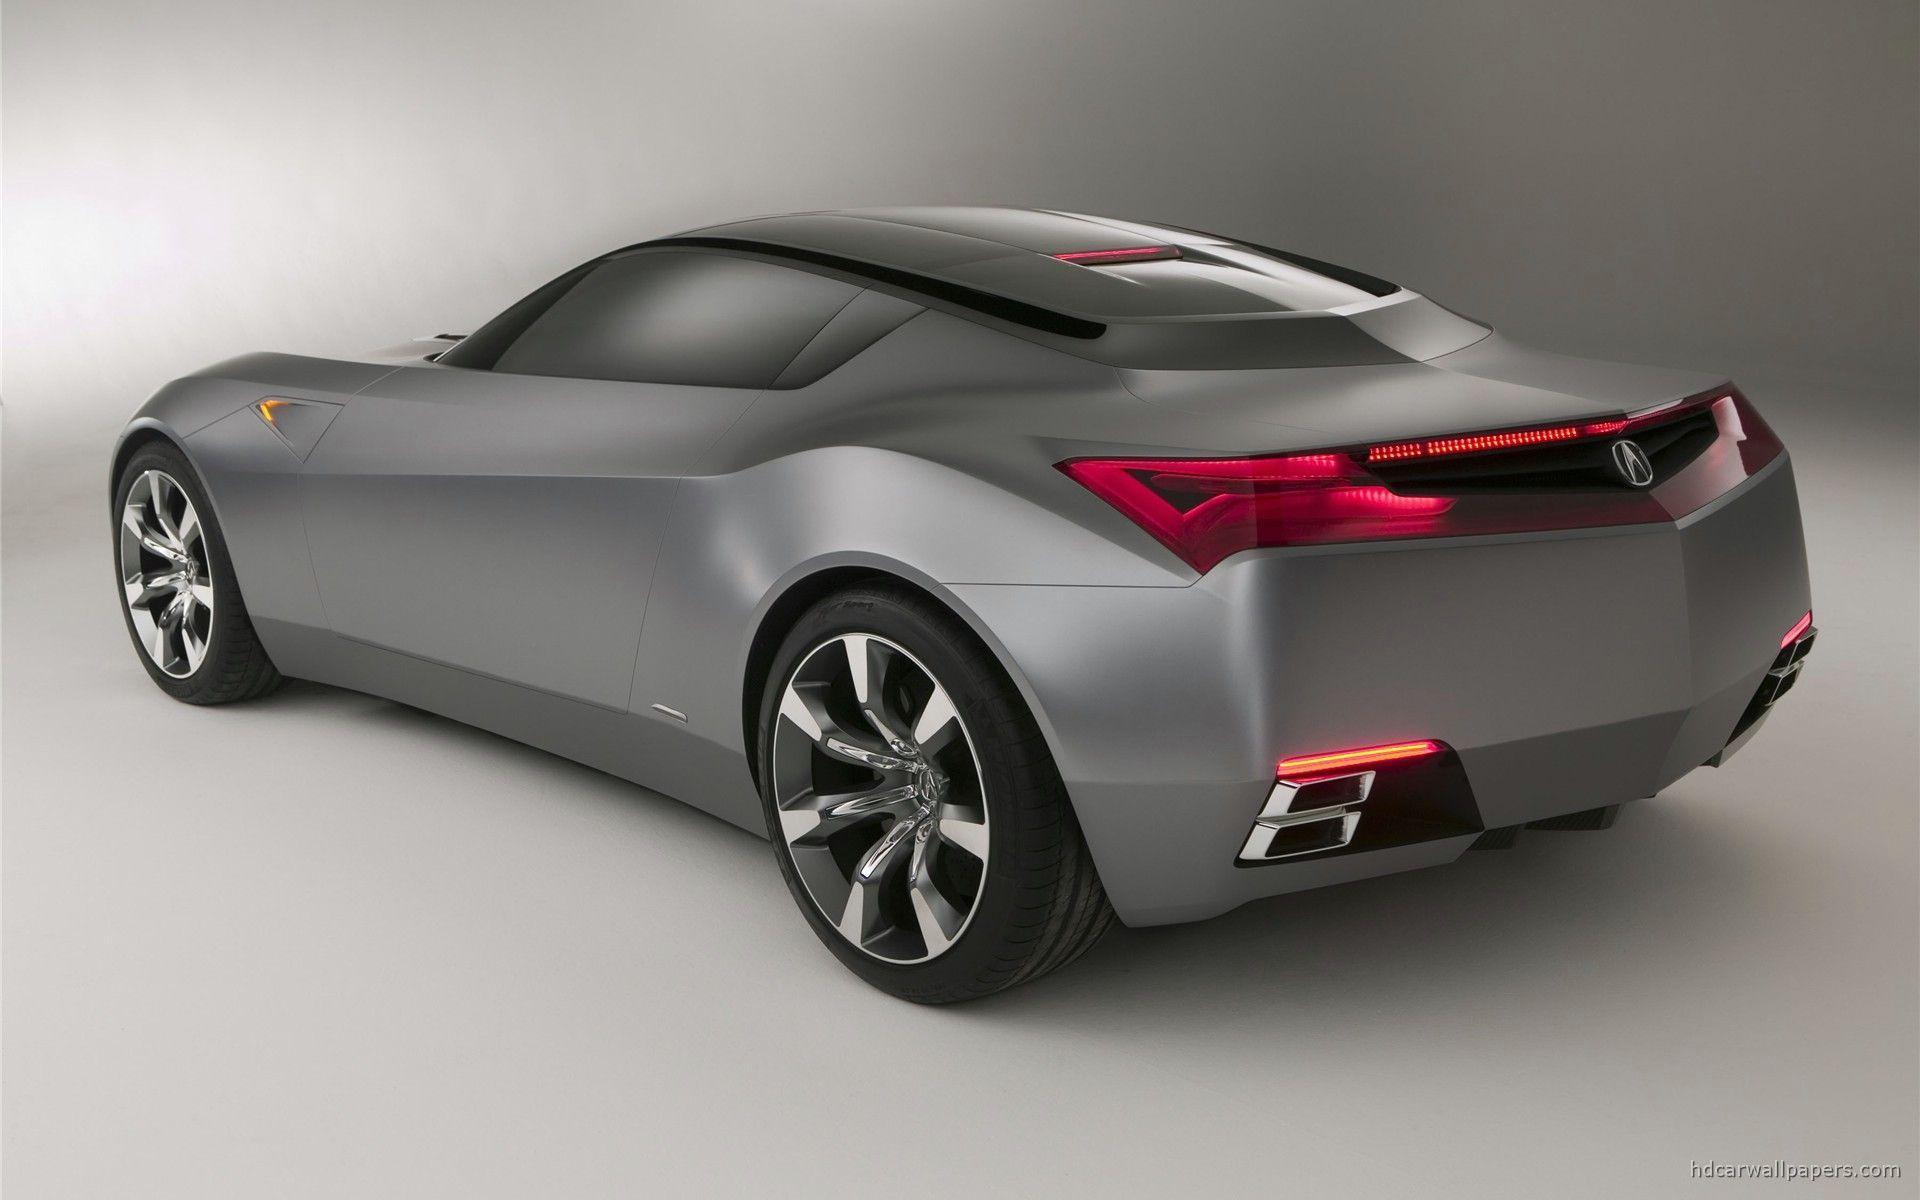 Acura advanced sports car concept 3 wallpaper hd car wallpapers